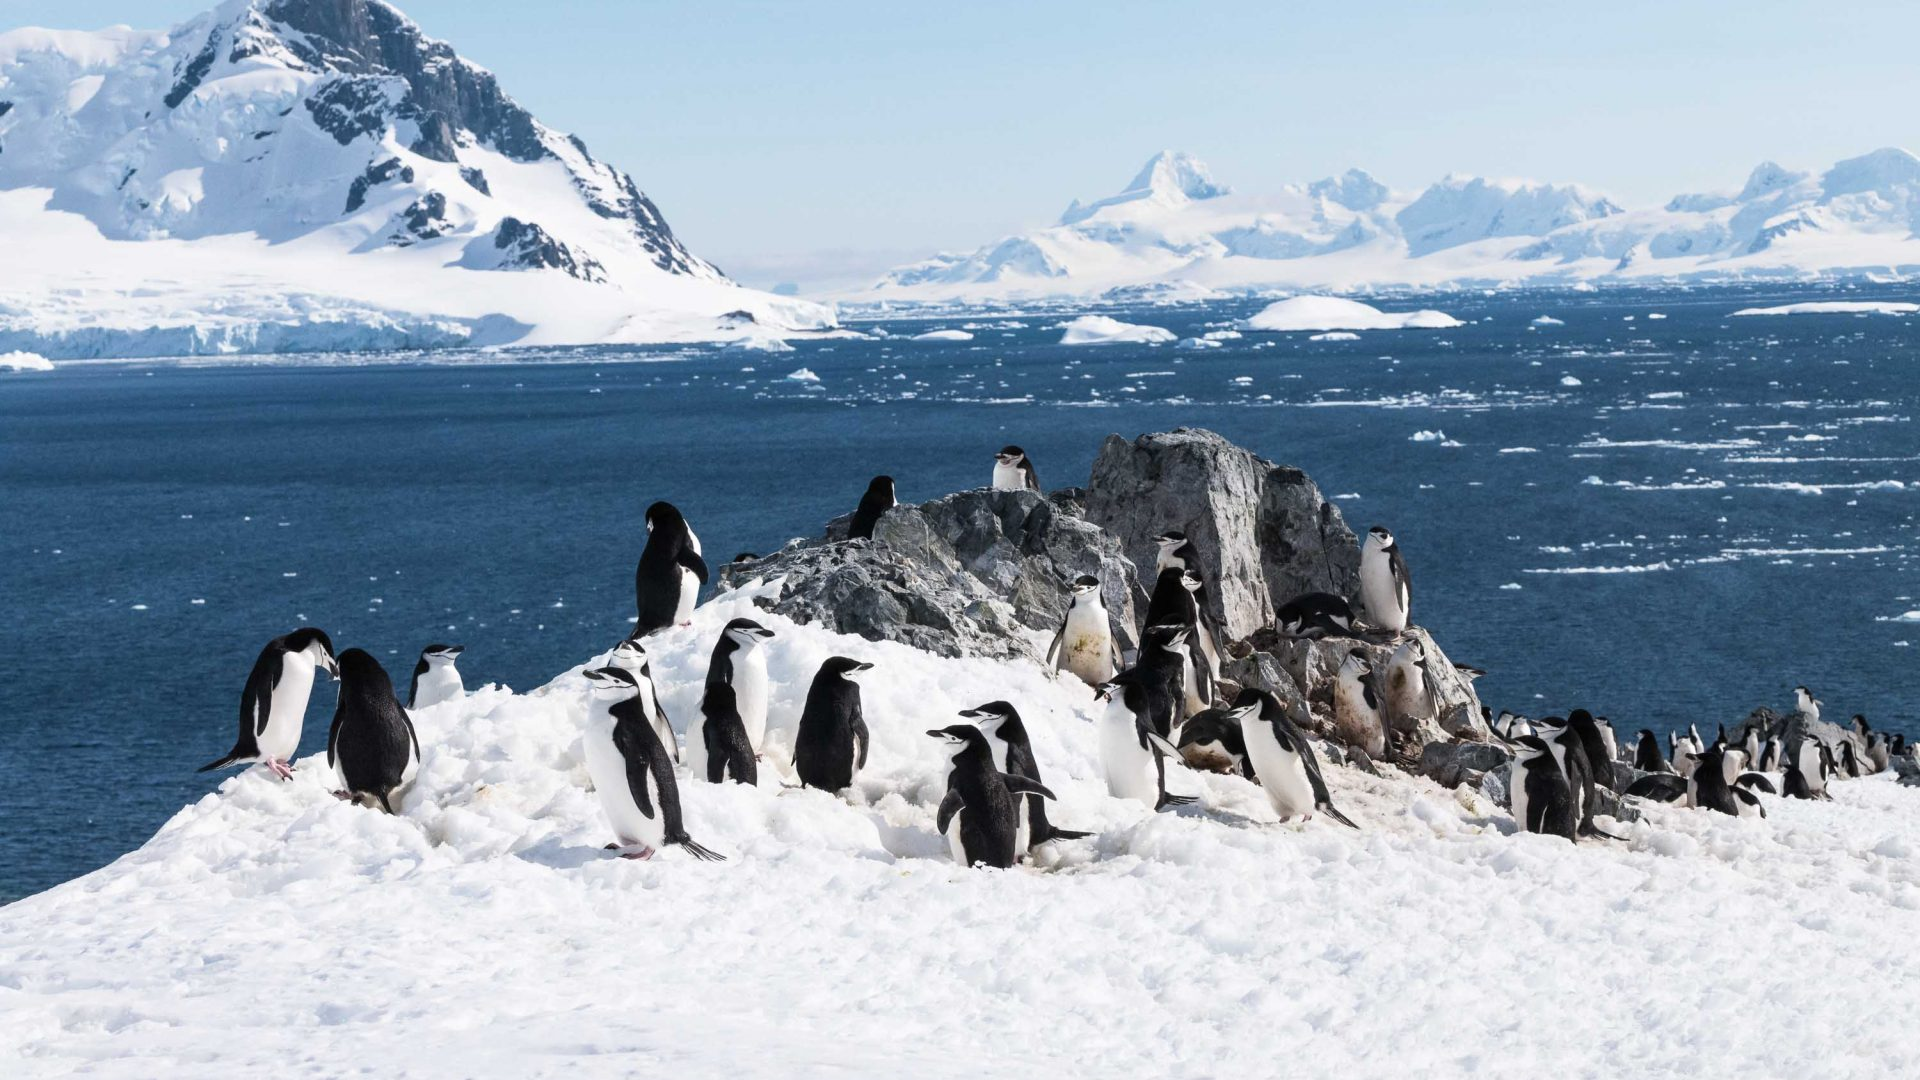 Chinstrap penguins from South Shetland Islands, Antarctica.